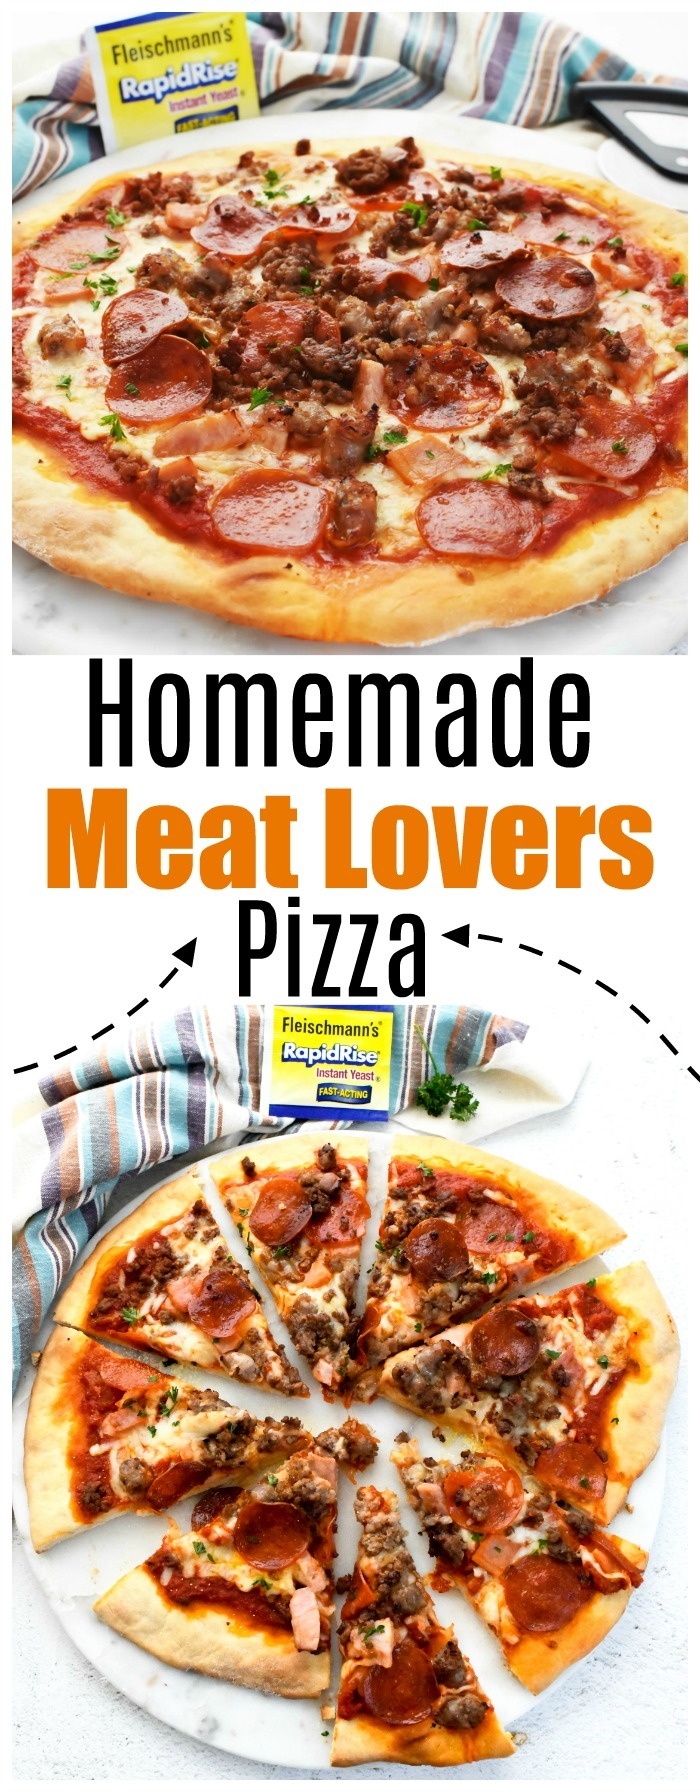 Homemade Meat Lovers Pizza Recipe